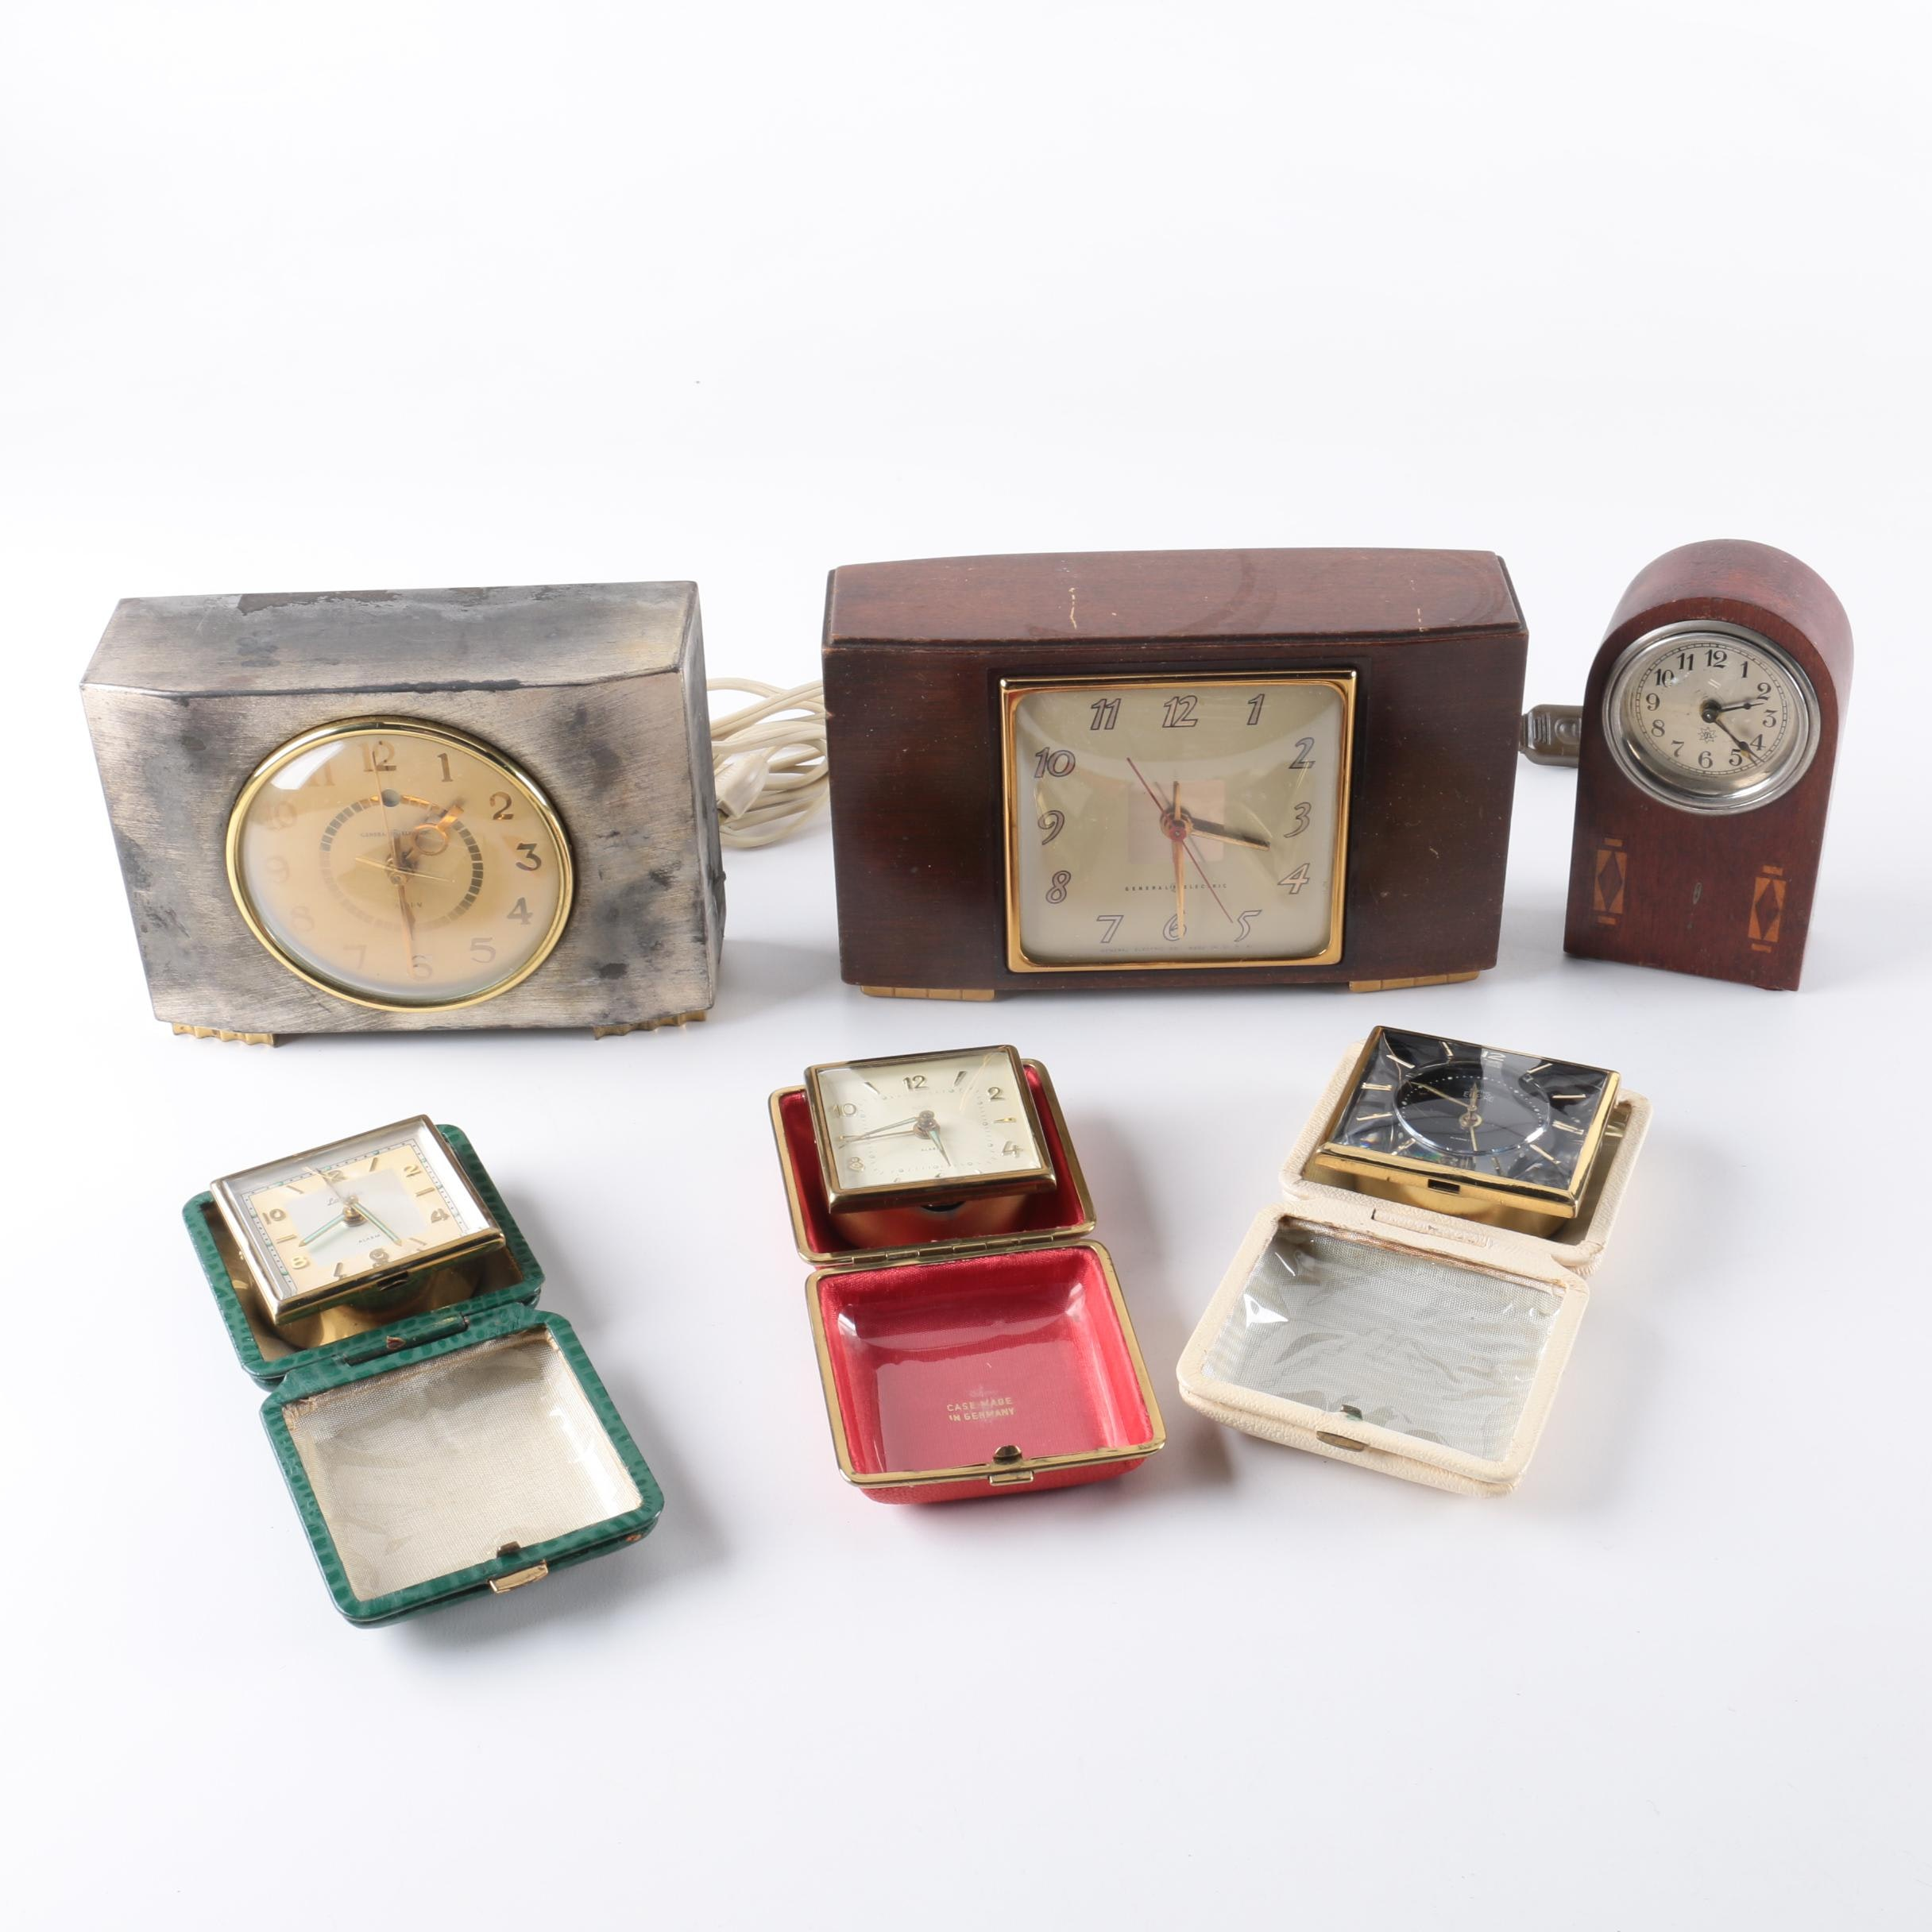 Retro Travel and Shelf Clocks